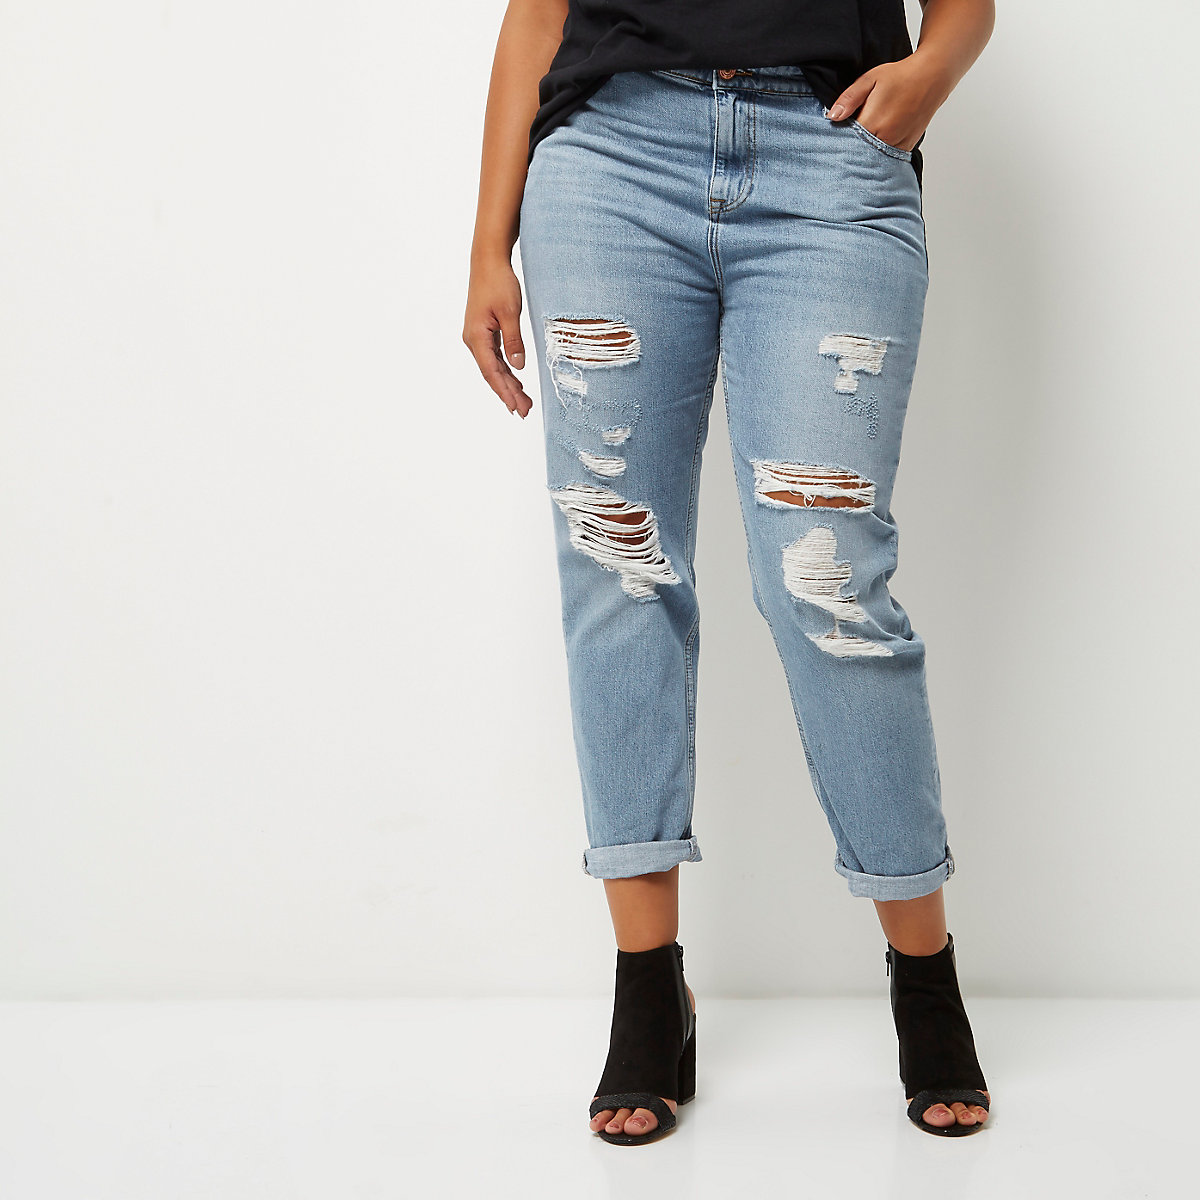 c0a952e58e Plus light wash ripped mom jeans - Mom Jeans - Jeans - women